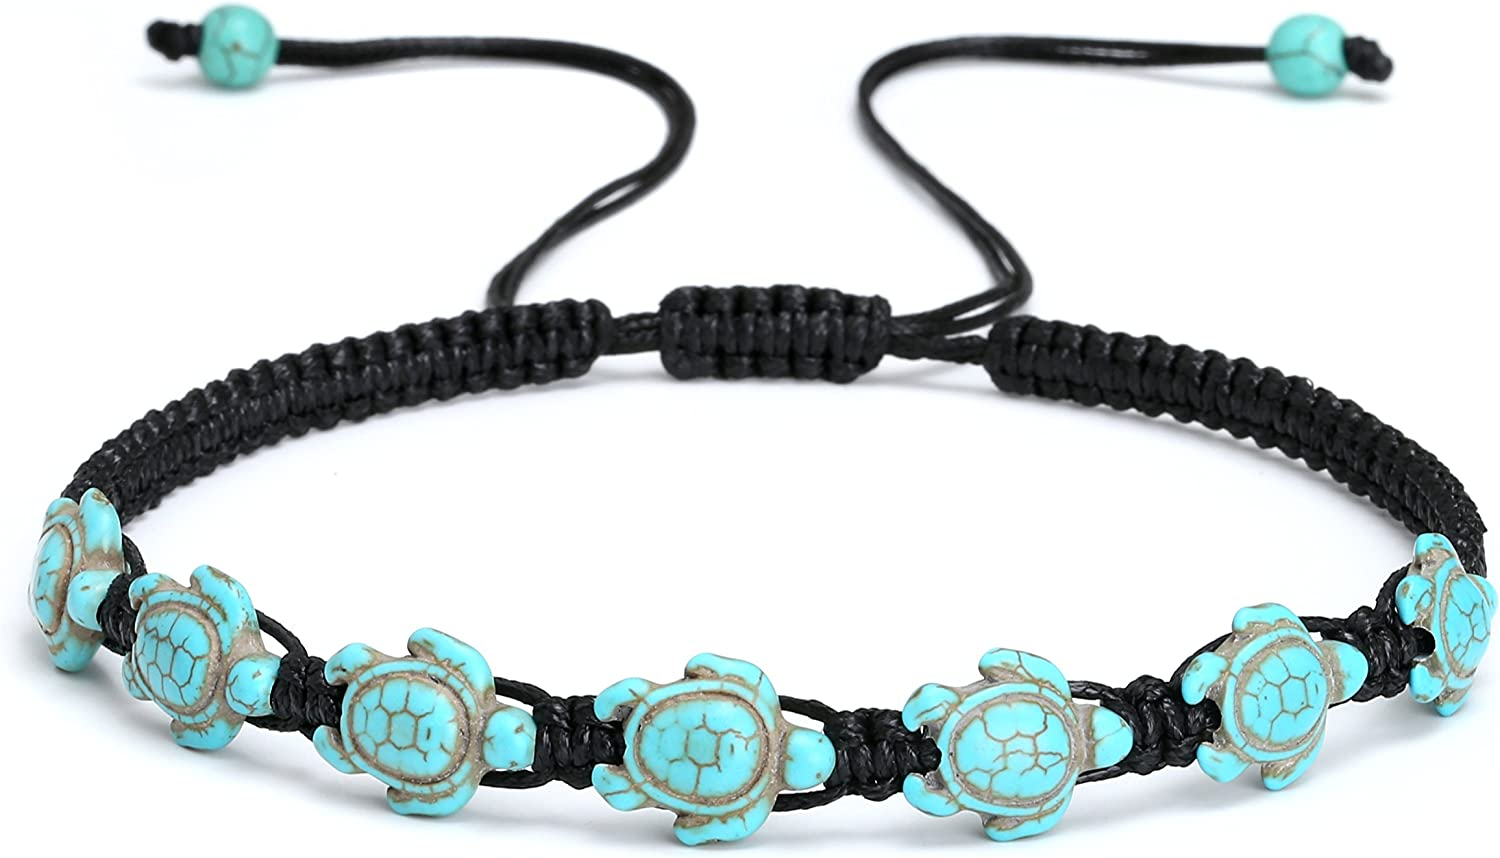 Hawaii Style Turtle Necklace Choker for Women Turquoise Beads Choker Necklace Save The turtle Straw Adjustable Handmade Jewelry